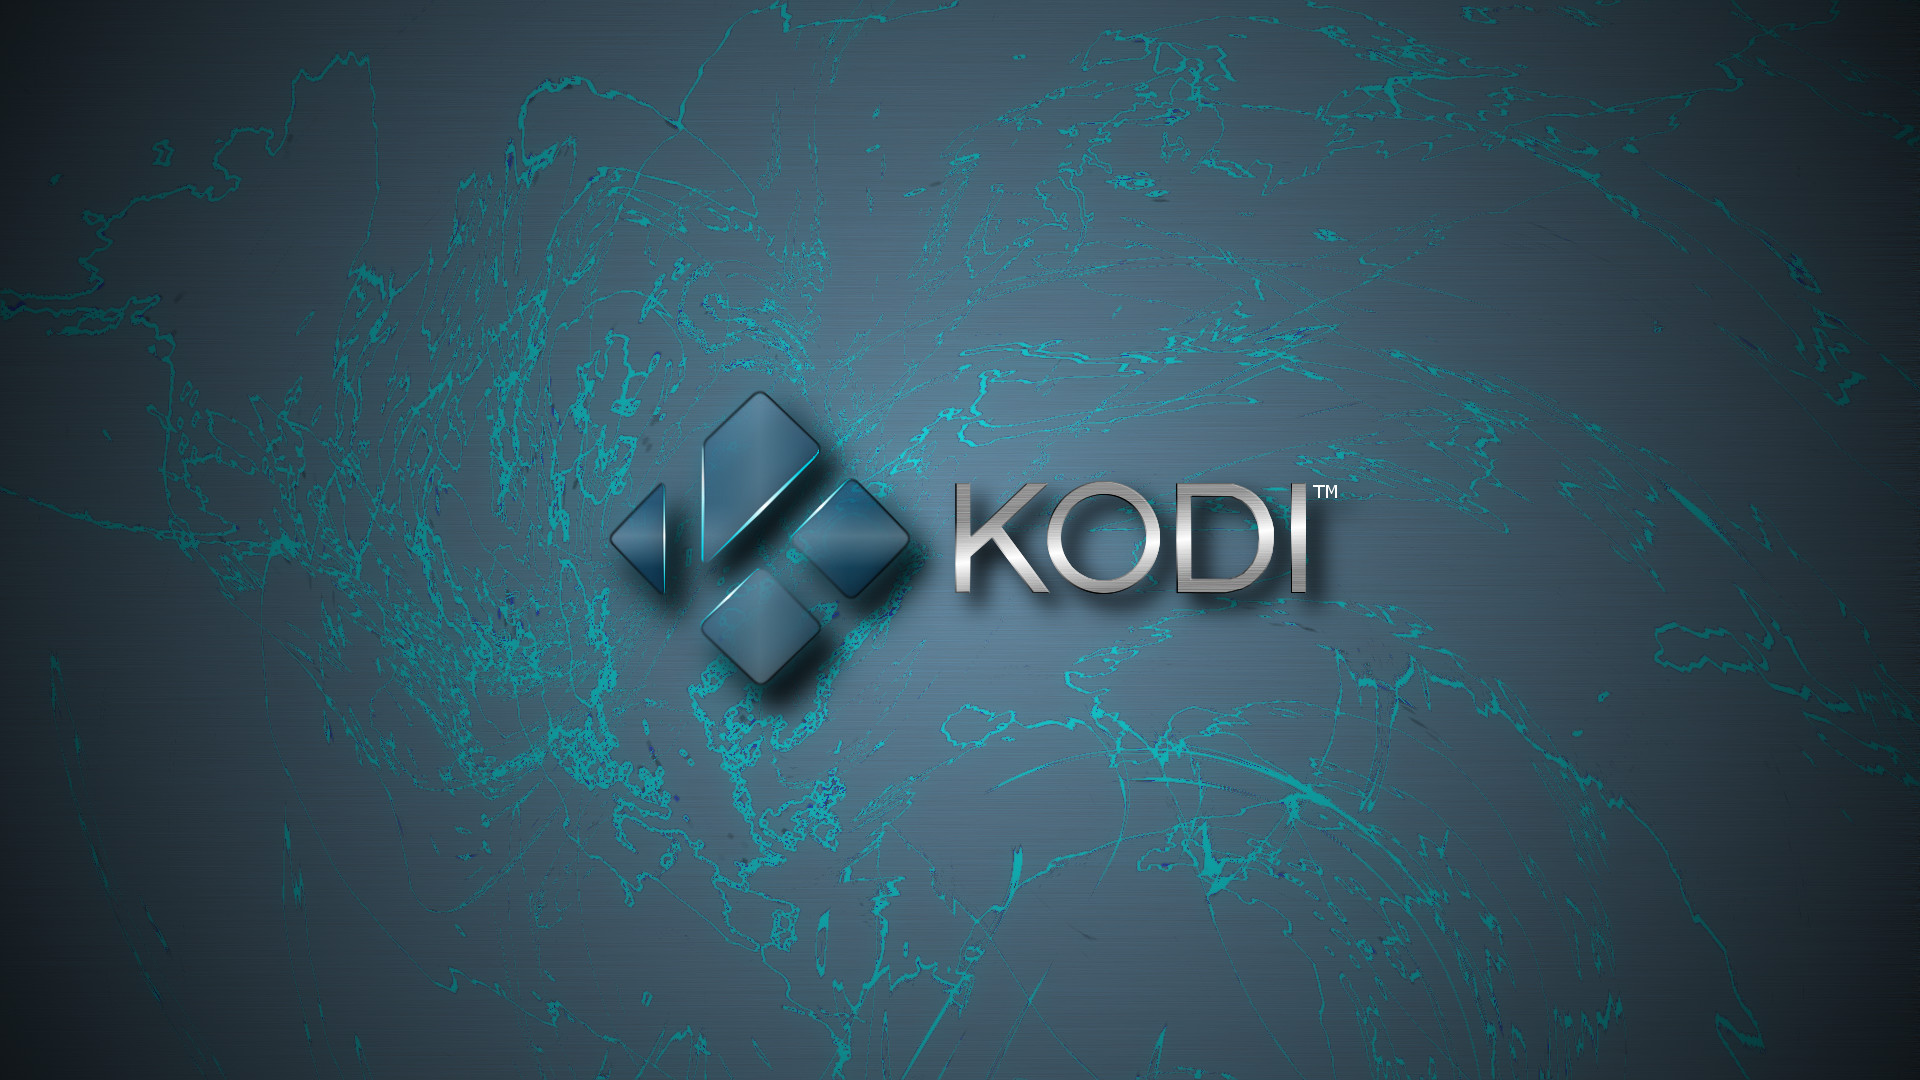 1920x1080 can provide you to HD WallpapersGet Gorgeous Hd Wallpapers Kodi